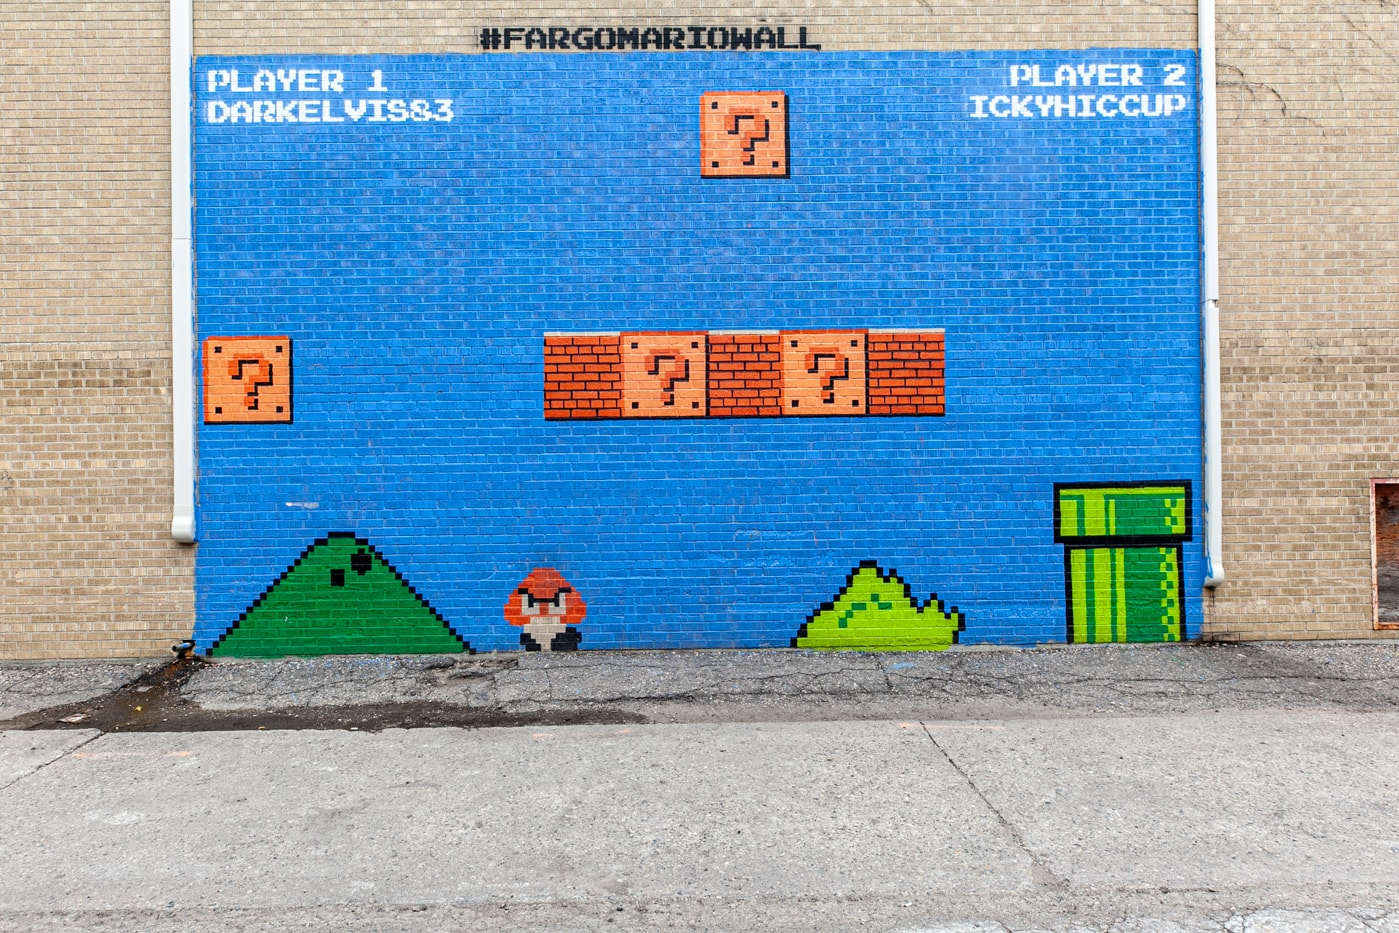 Fargo Mario Wall | Super Mario Bros Mural in Fargo, North Dakota | Street Art in Fargo, North Dakota